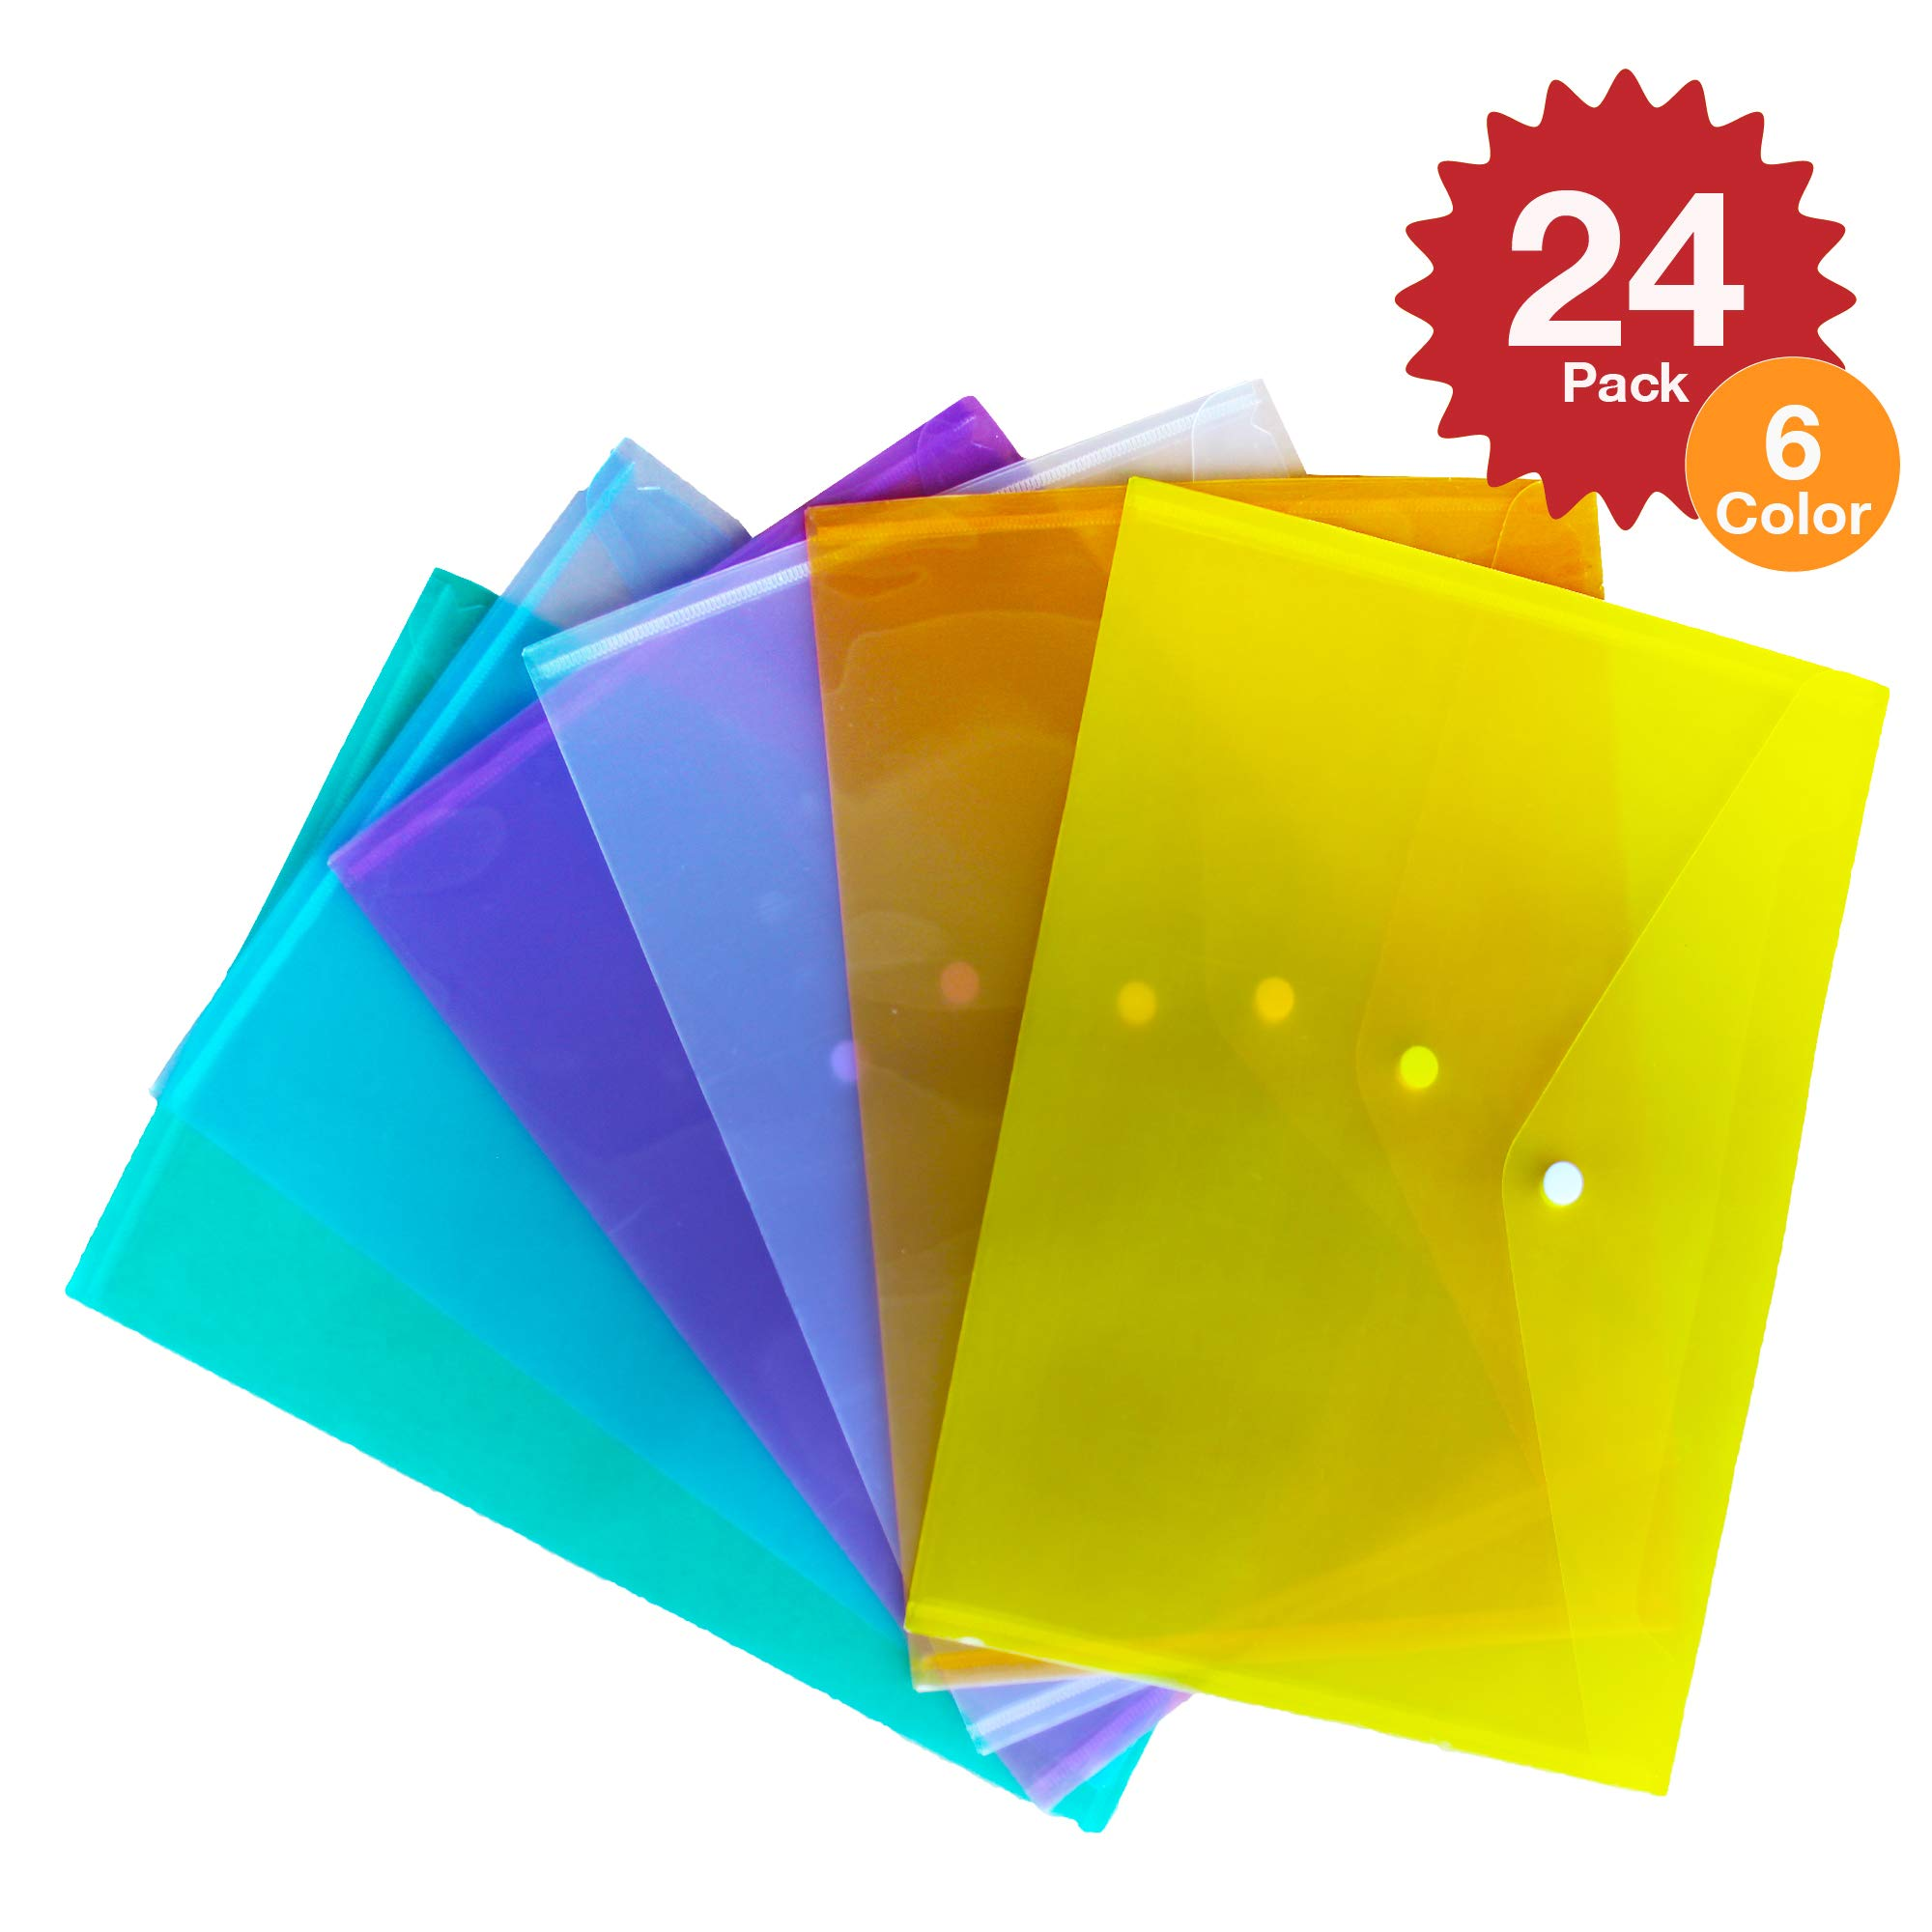 Multicolored Clear Document Folder with Snap Button ~ Poly Filing Envelope Stores US Letter / A4 Size Paper ~ 6 Assorted Colors (Multi Color - Set of 24)